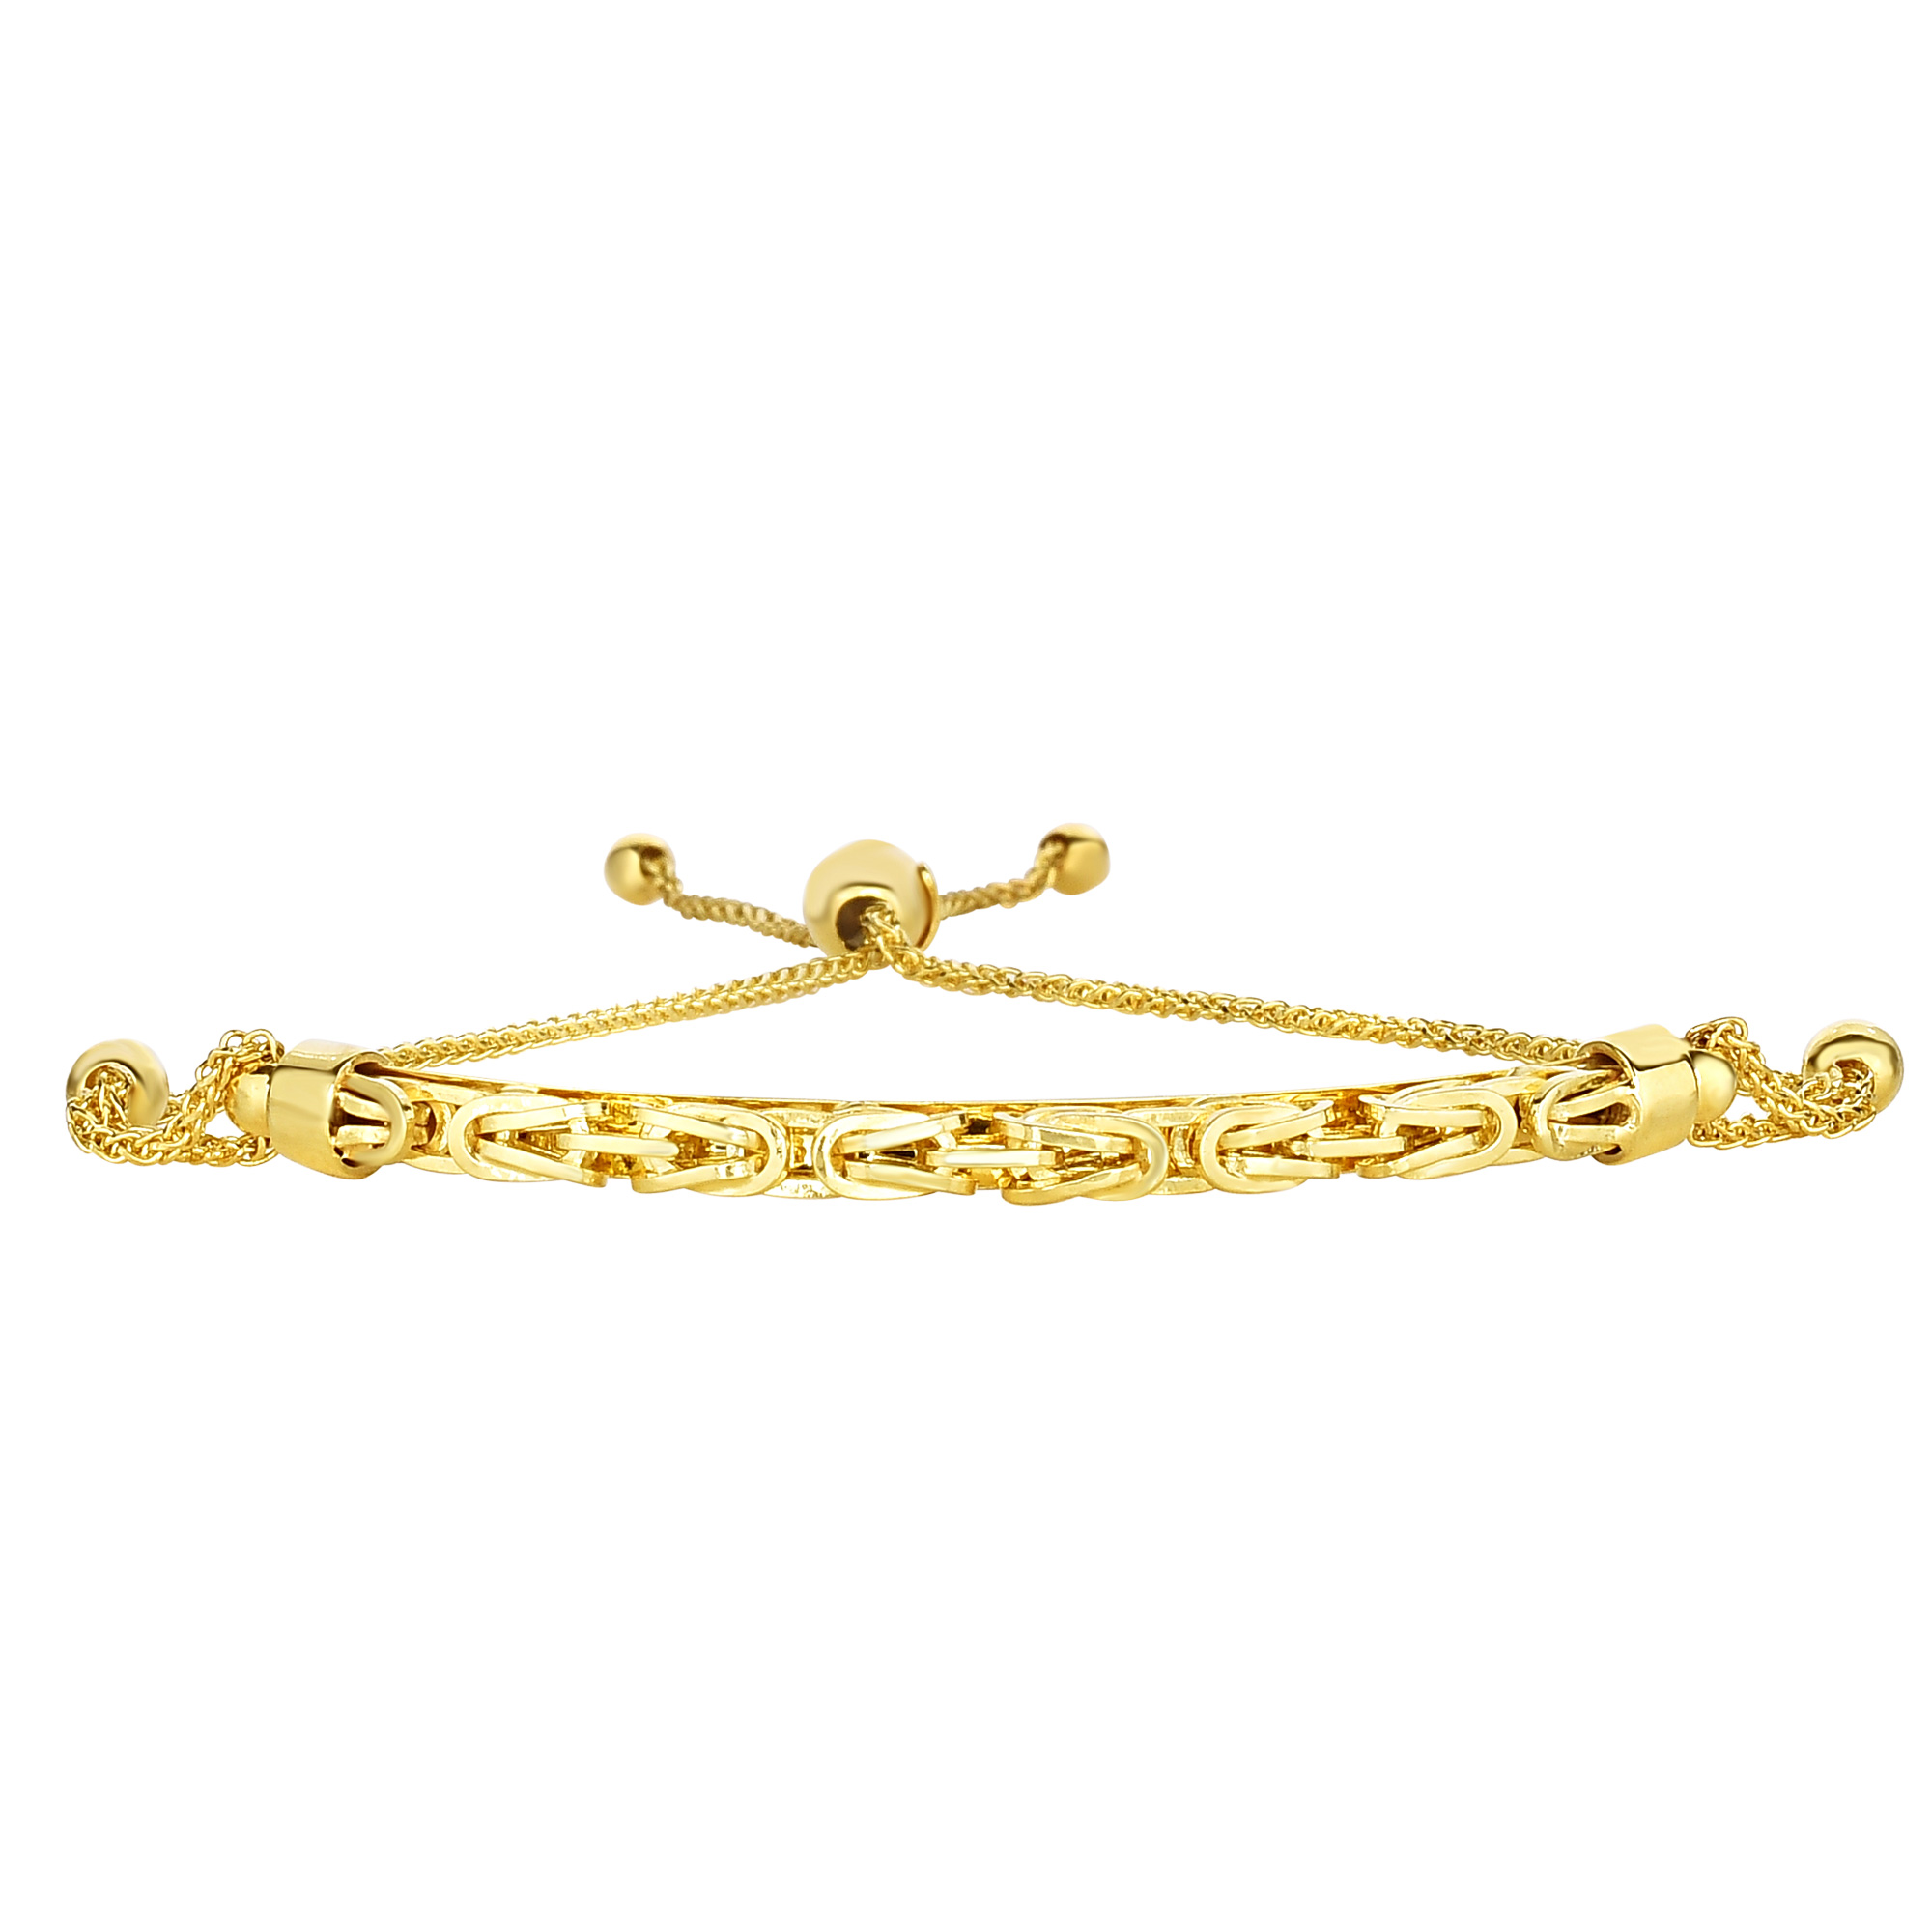 14K Yellow Gold Round Diamond Cut Wheat Adjustable Bracelet Arched Byzantine Center, 9.25  Crafted in 14K gold, Our BOLO friendship line of bracelets are stylish easy to wear and a one of a kind collection. Meticulously executed in high quality finish 14K gold, these iconic bracelets are easily adjusted to fit any wrist. Each unique style of our Friendship collection looks beautiful worn as one piece alone or stacked with multiple styles for a layered and modern look. The bracelet comes in an elegant jewelry gift box, perfect for any gift giving occasion.